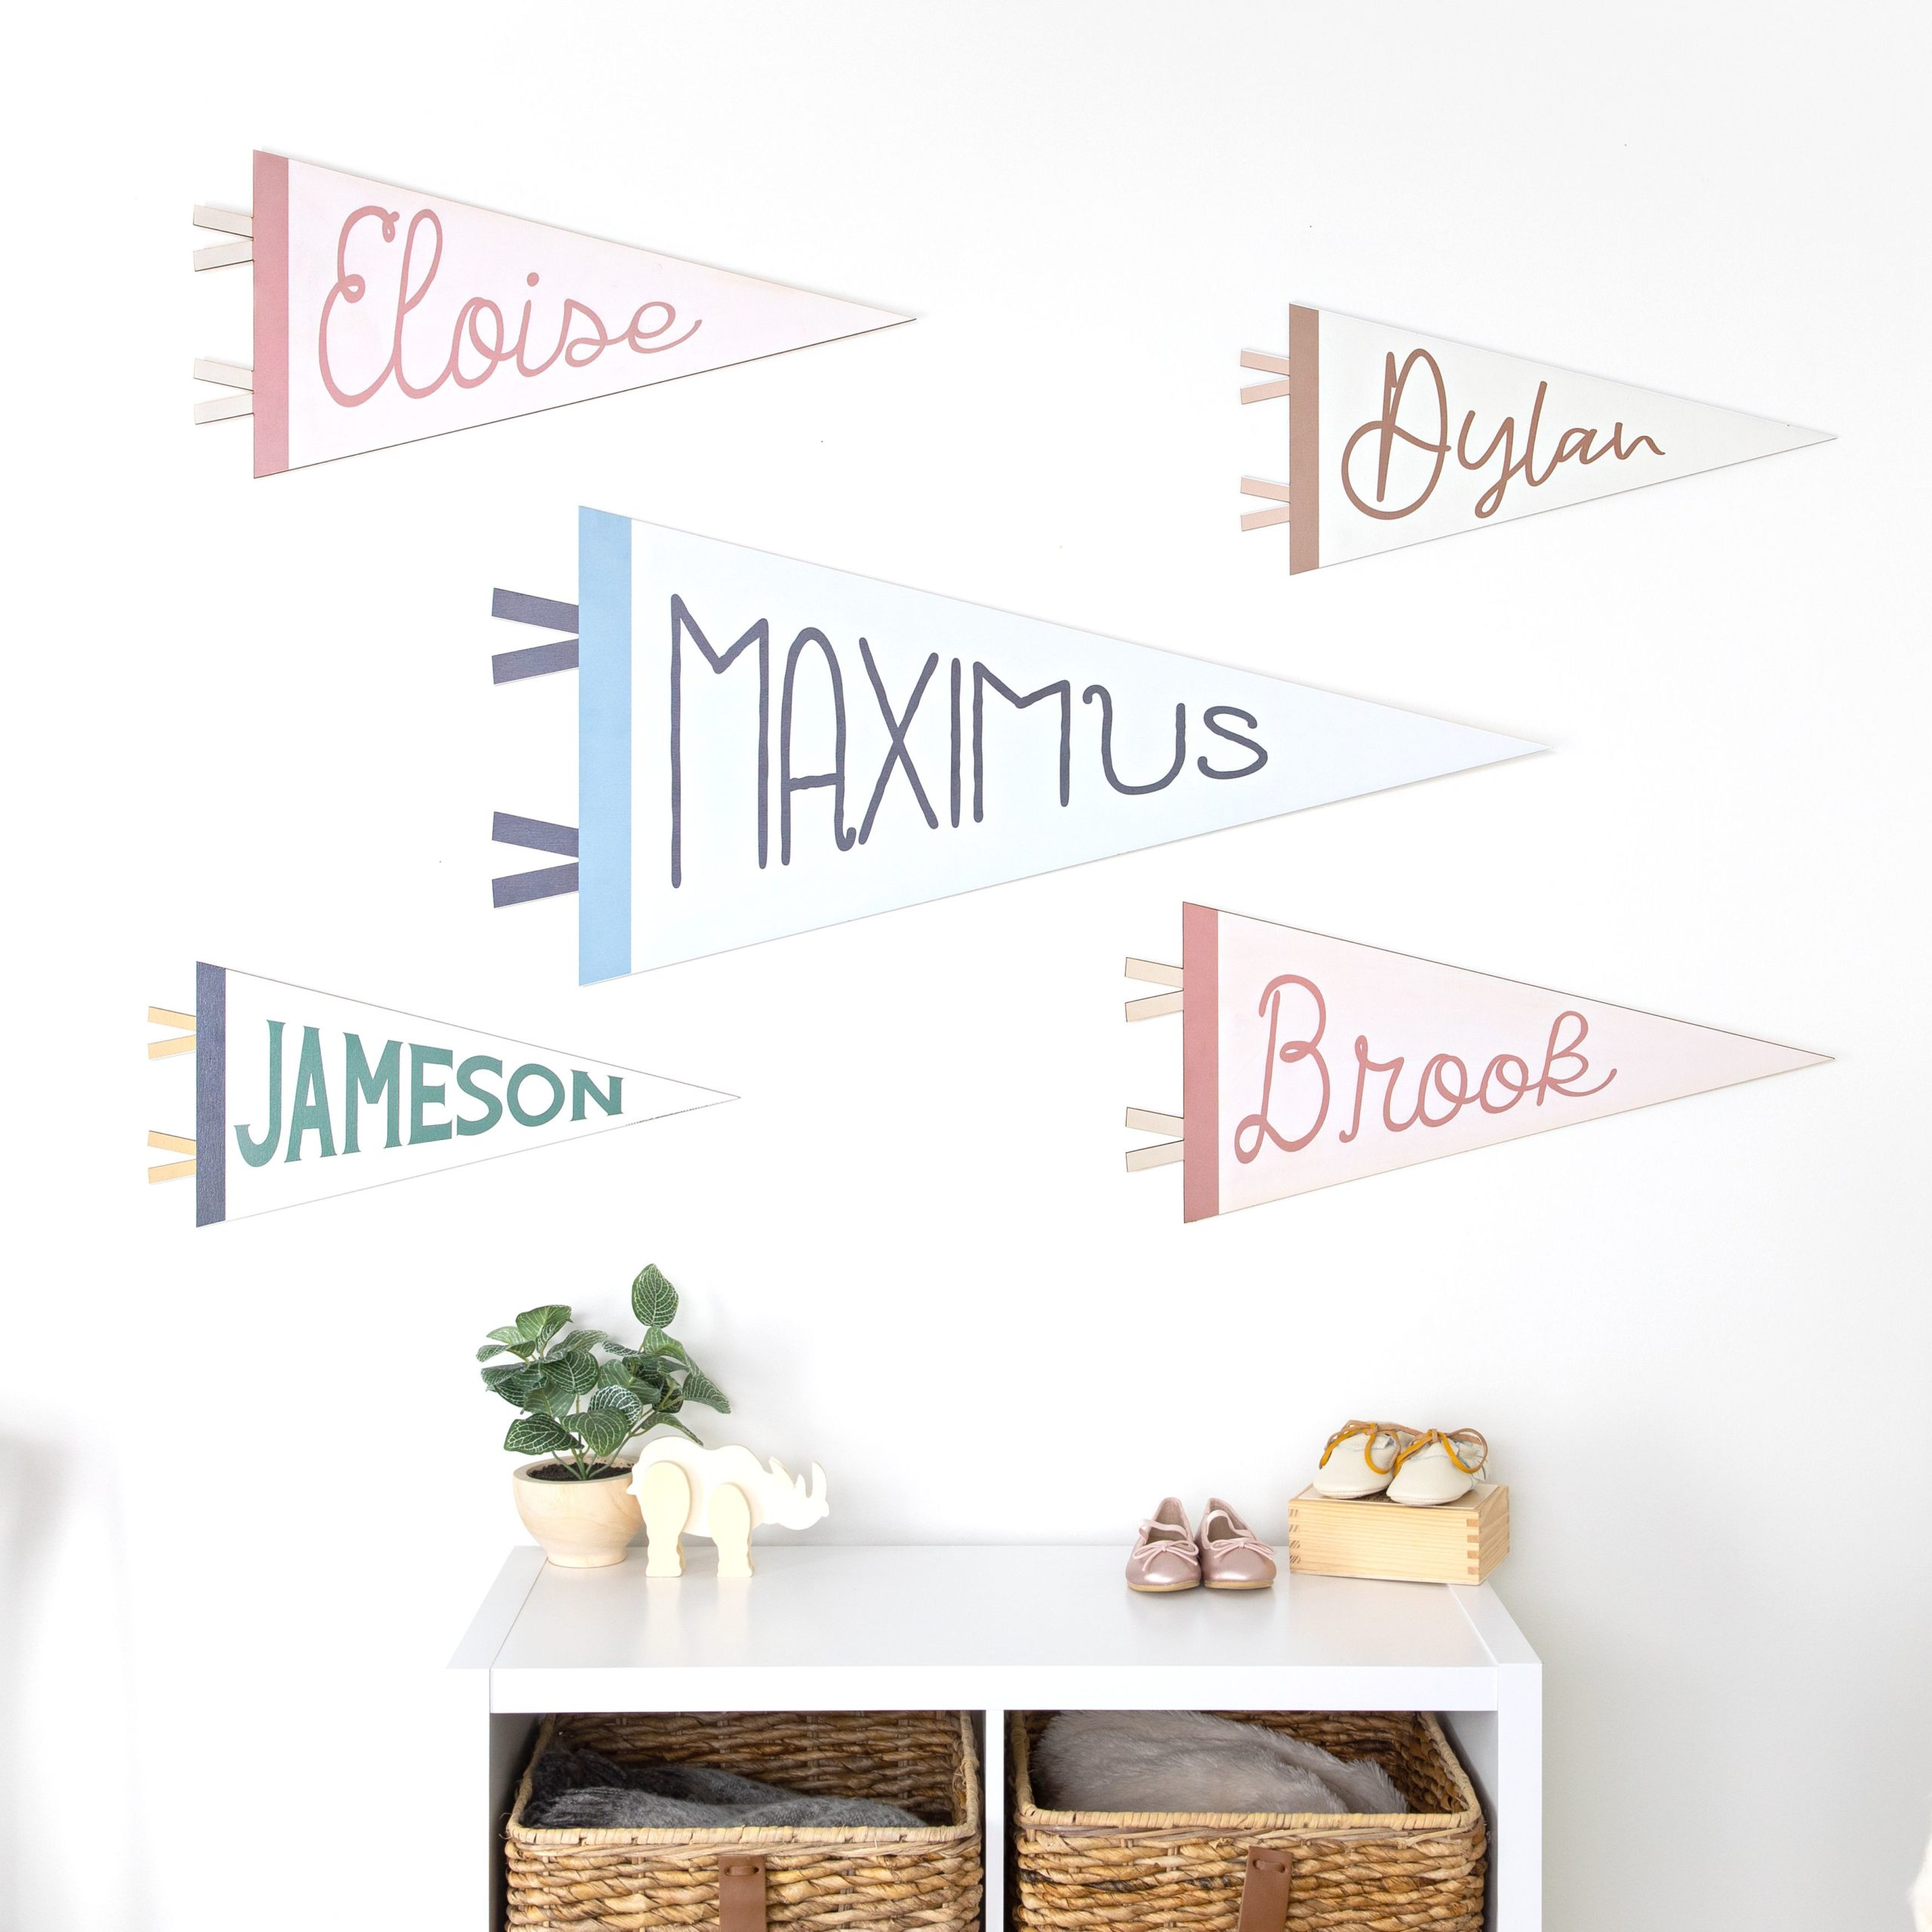 Kiki and Max Personalized Wooden Pennant Banners